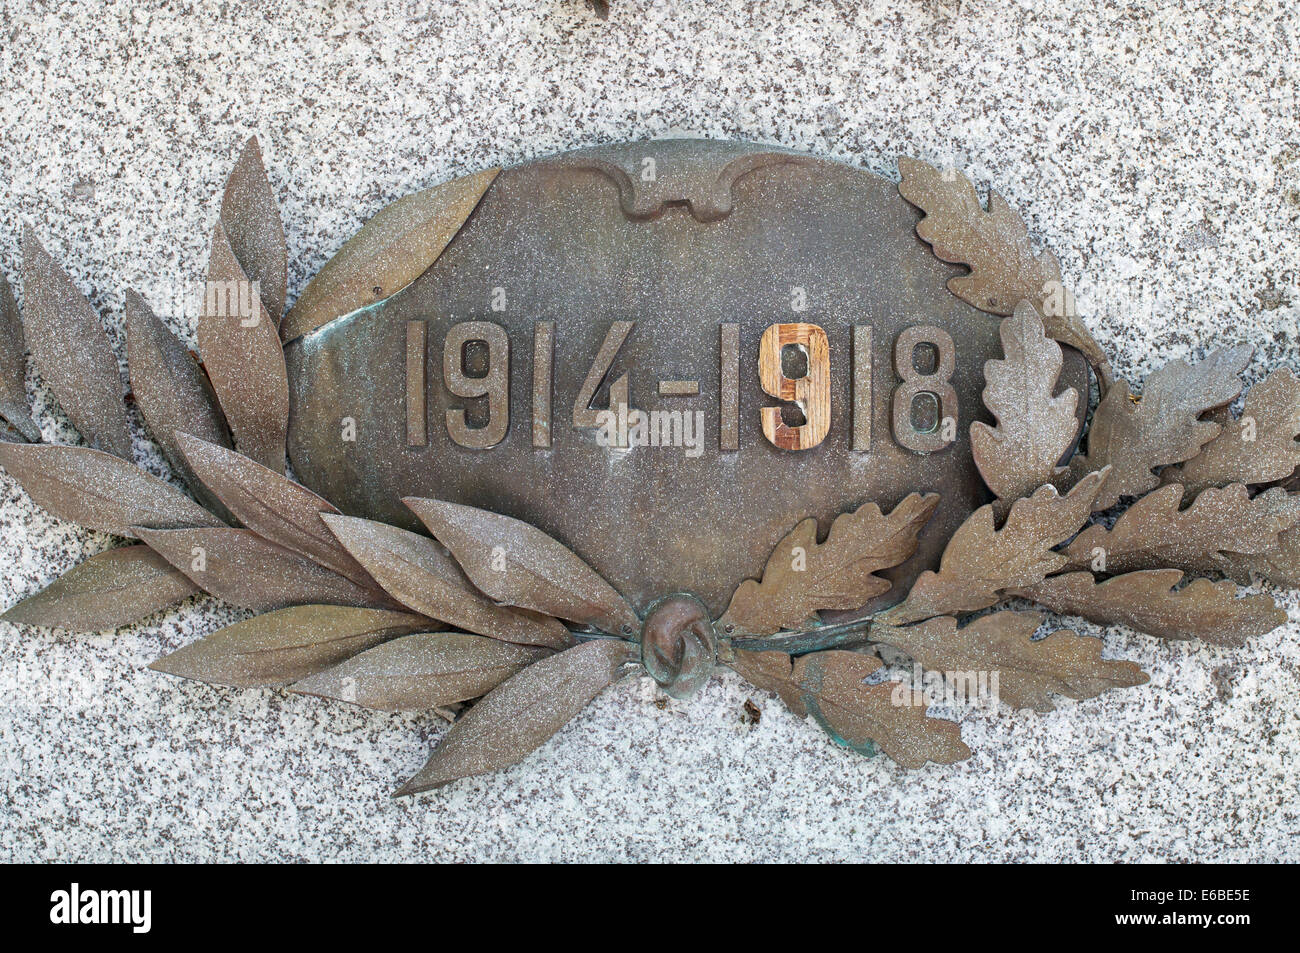 Date 1914-1918 on WW1 war memorial with missing numeral replaced with wood Sanguinet, Aquitaine, France, Europe - Stock Image